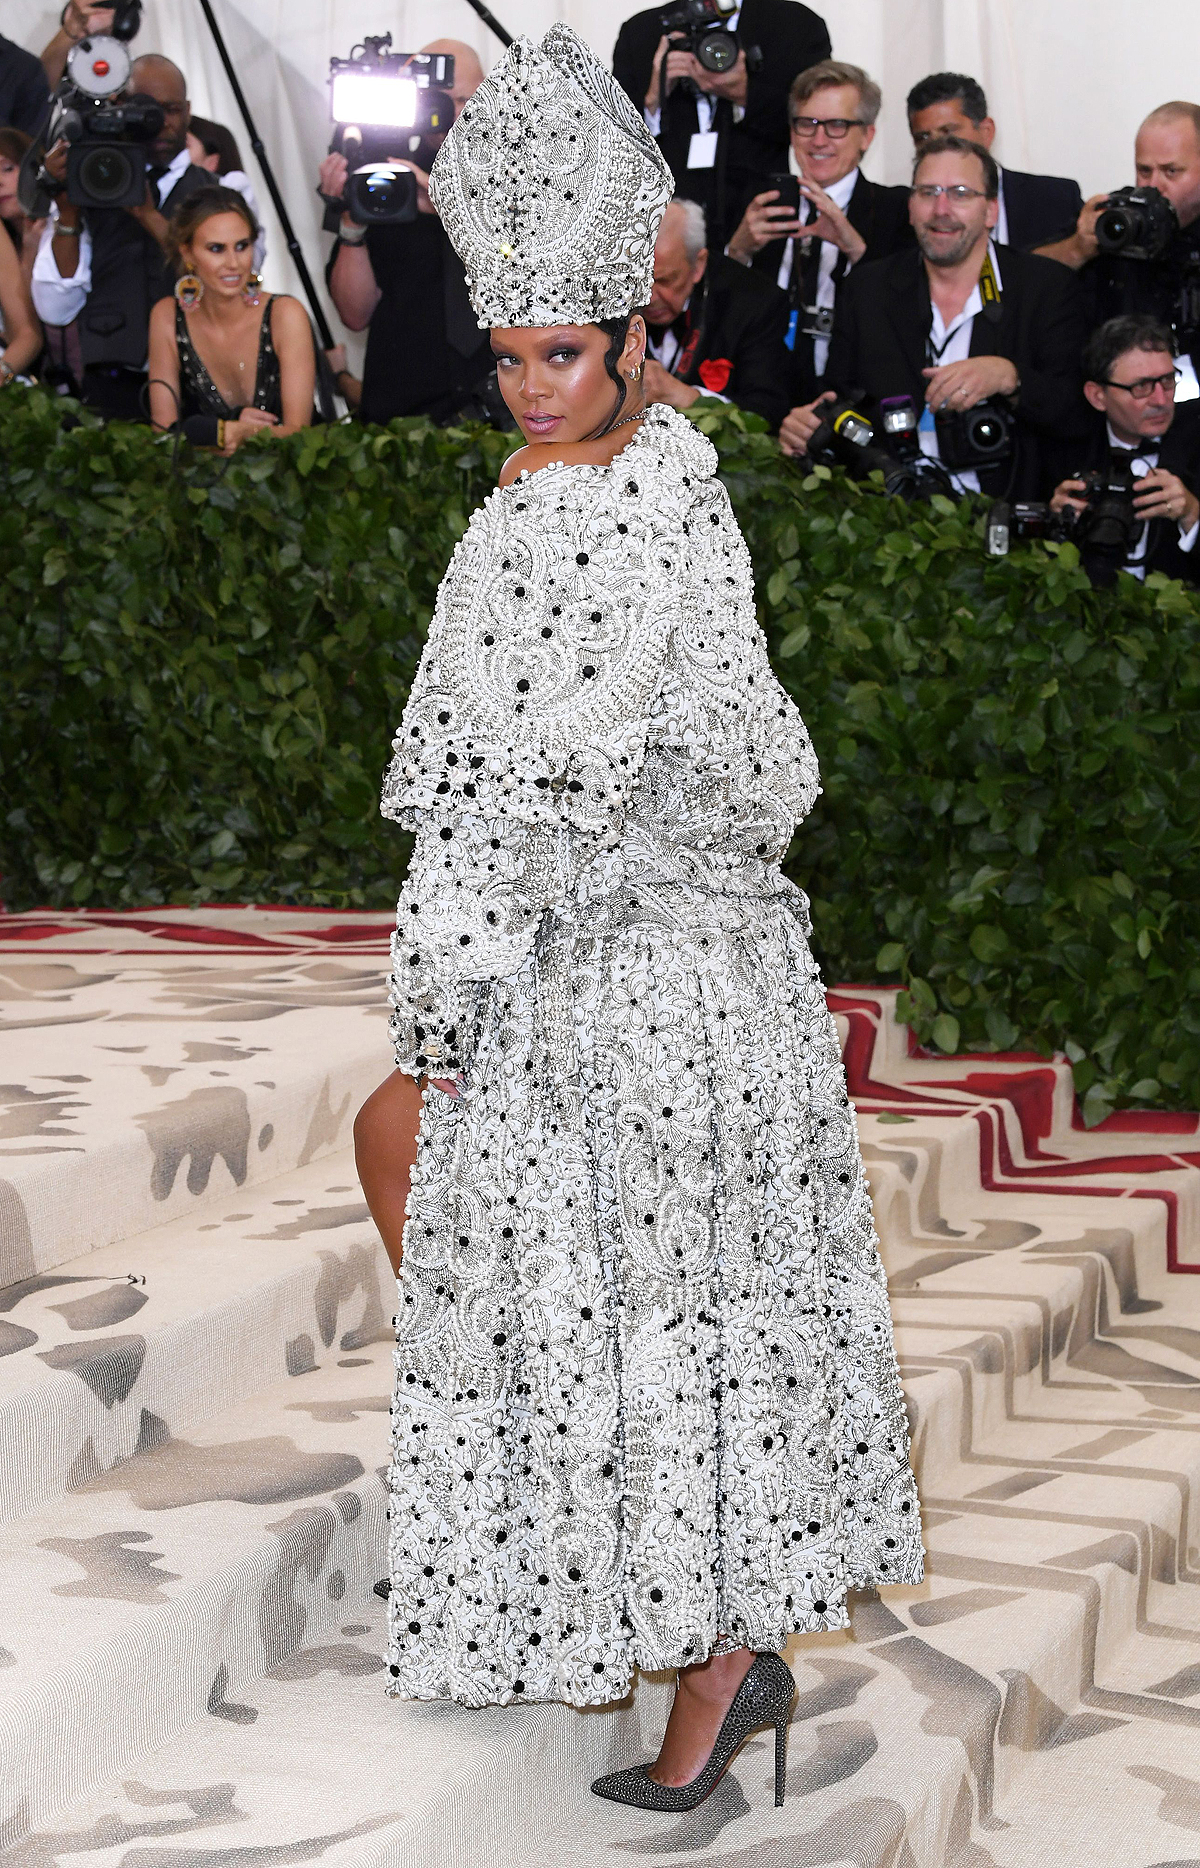 The Metropolitan Museum of Art's Costume Institute Benefit celebrating the opening of Heavenly Bodies: Fashion and the Catholic Imagination, Arrivals, New York, USA - 07 May 2018